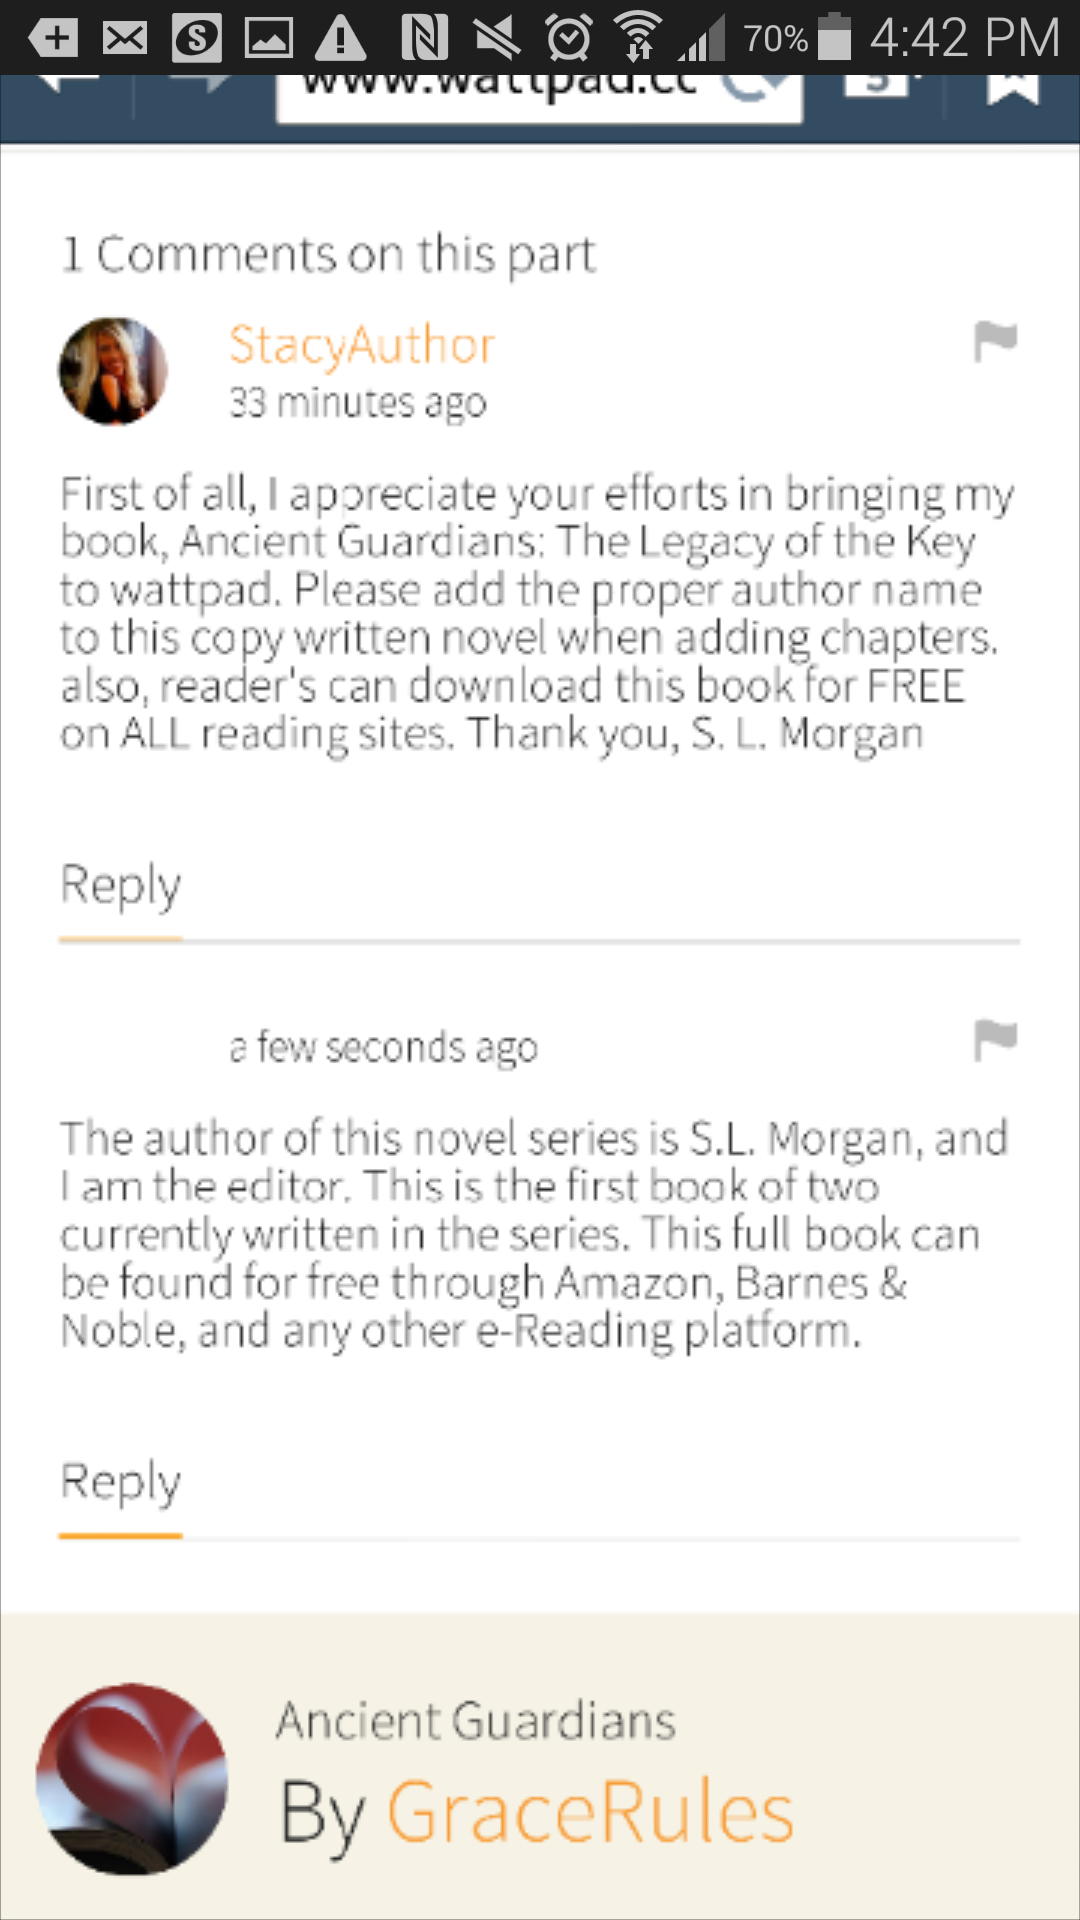 Plagiarism on wattpad: Attention fellow authors & Readers